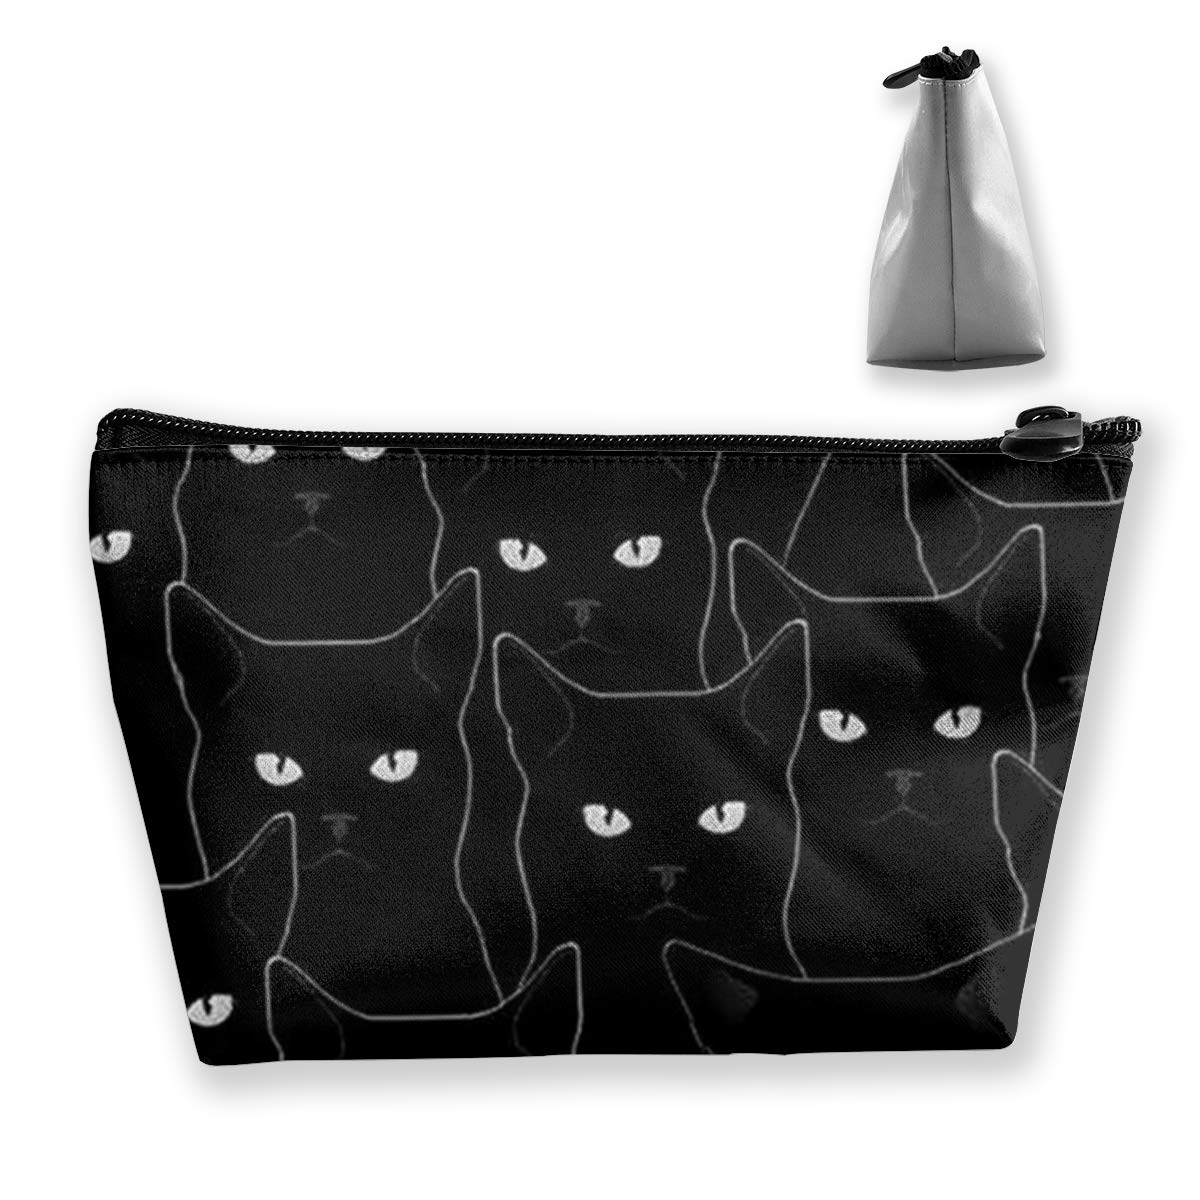 Premium Trapezoidal Storage Organizer Bag Portable Toiletry Bag Make Up Cosmetic Pouch Travel Toiletry Clutch Bag With Zipper (Black Cat)